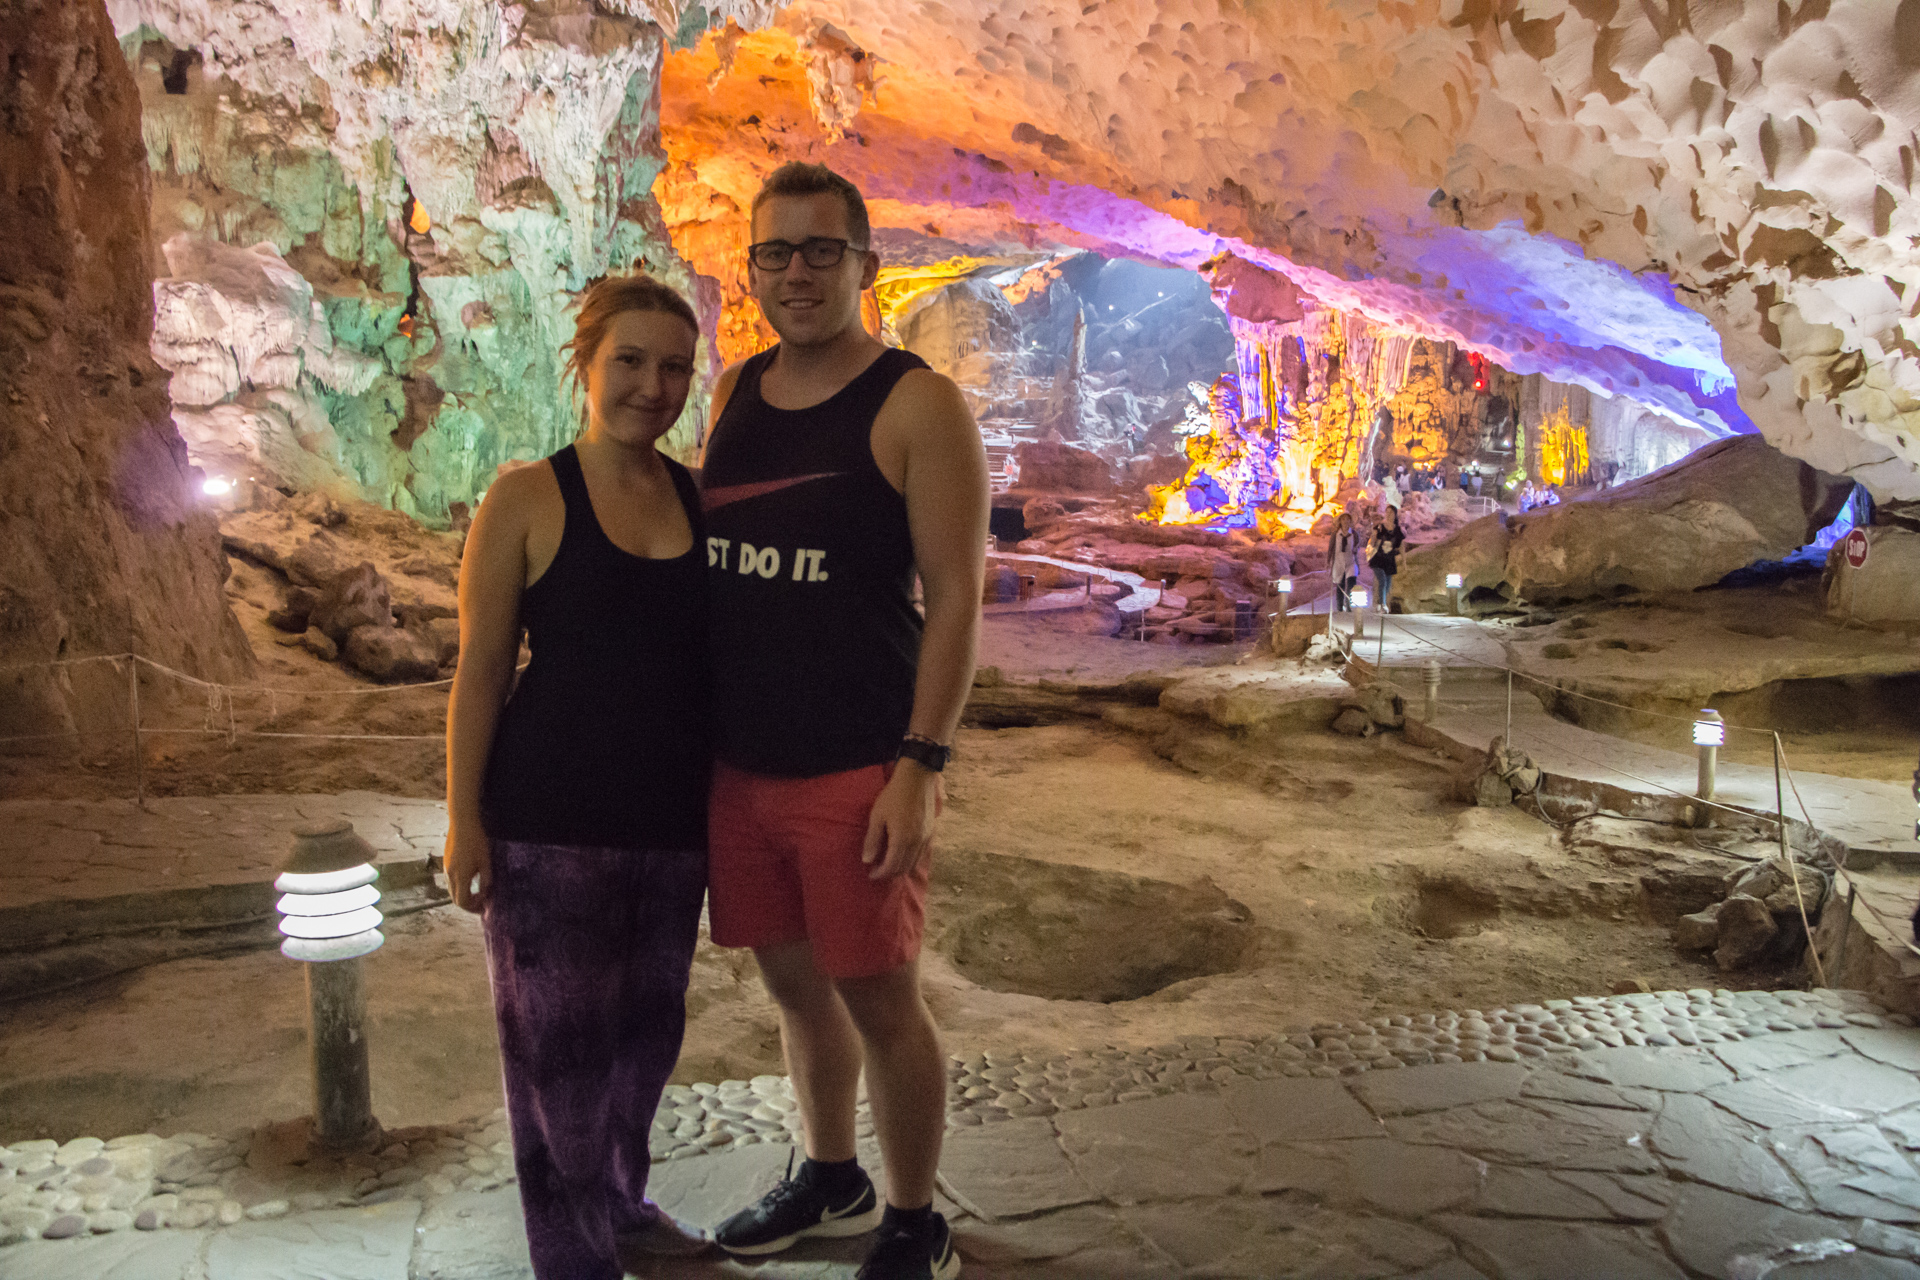 Alex and Alis in Dau Go Caves, Halong Bay, Vietnam